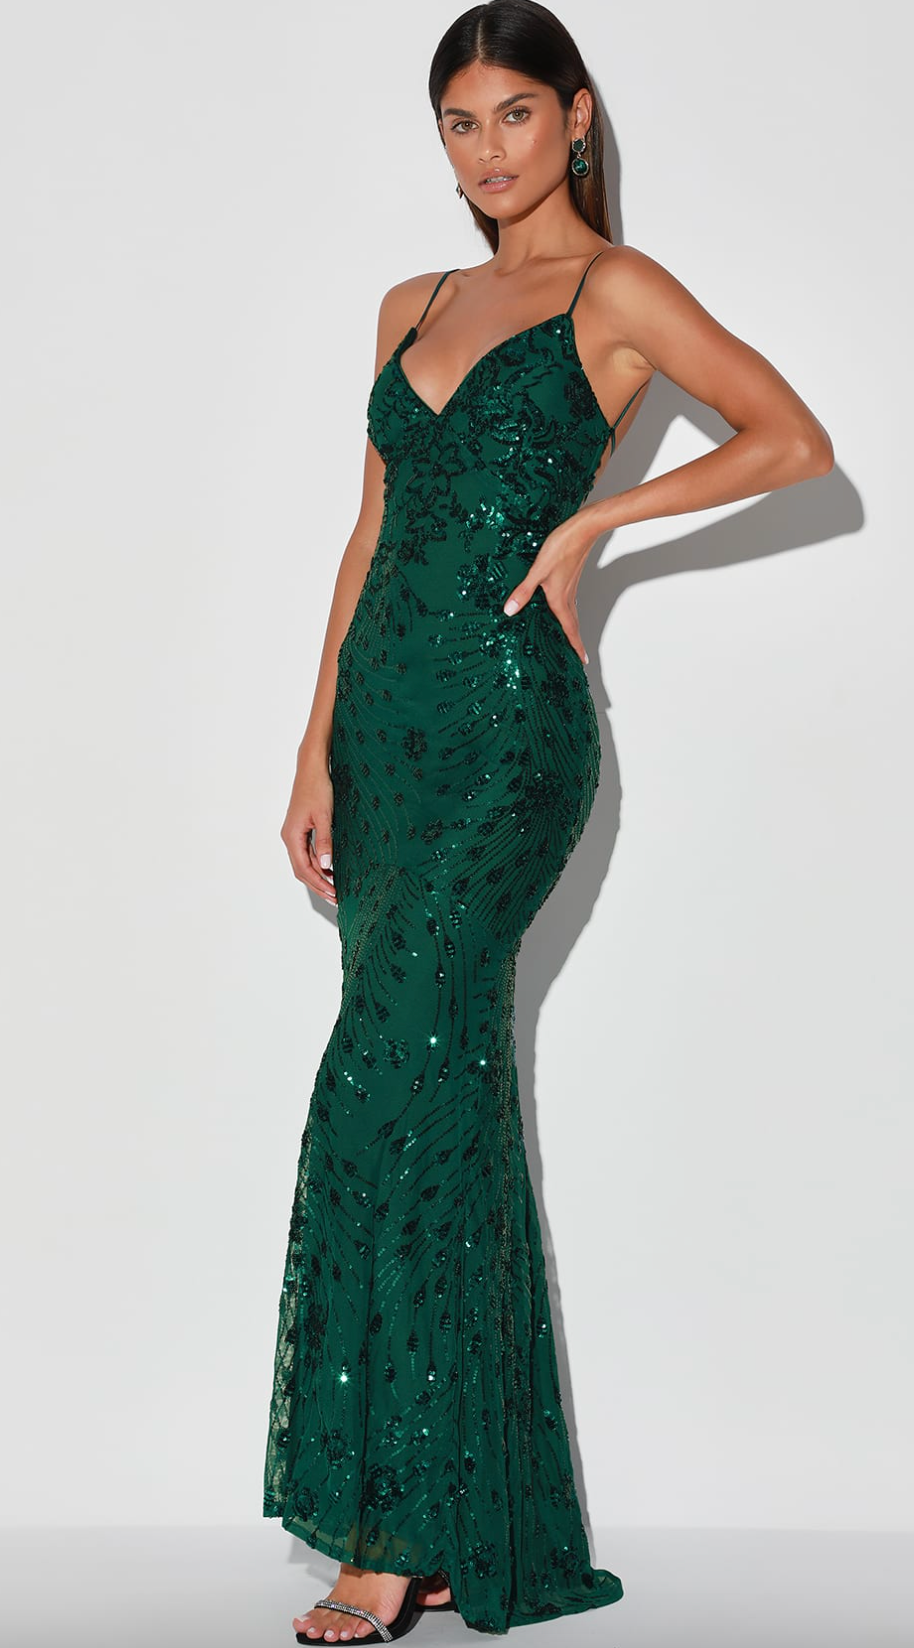 Glam forest green dress from Lulu's